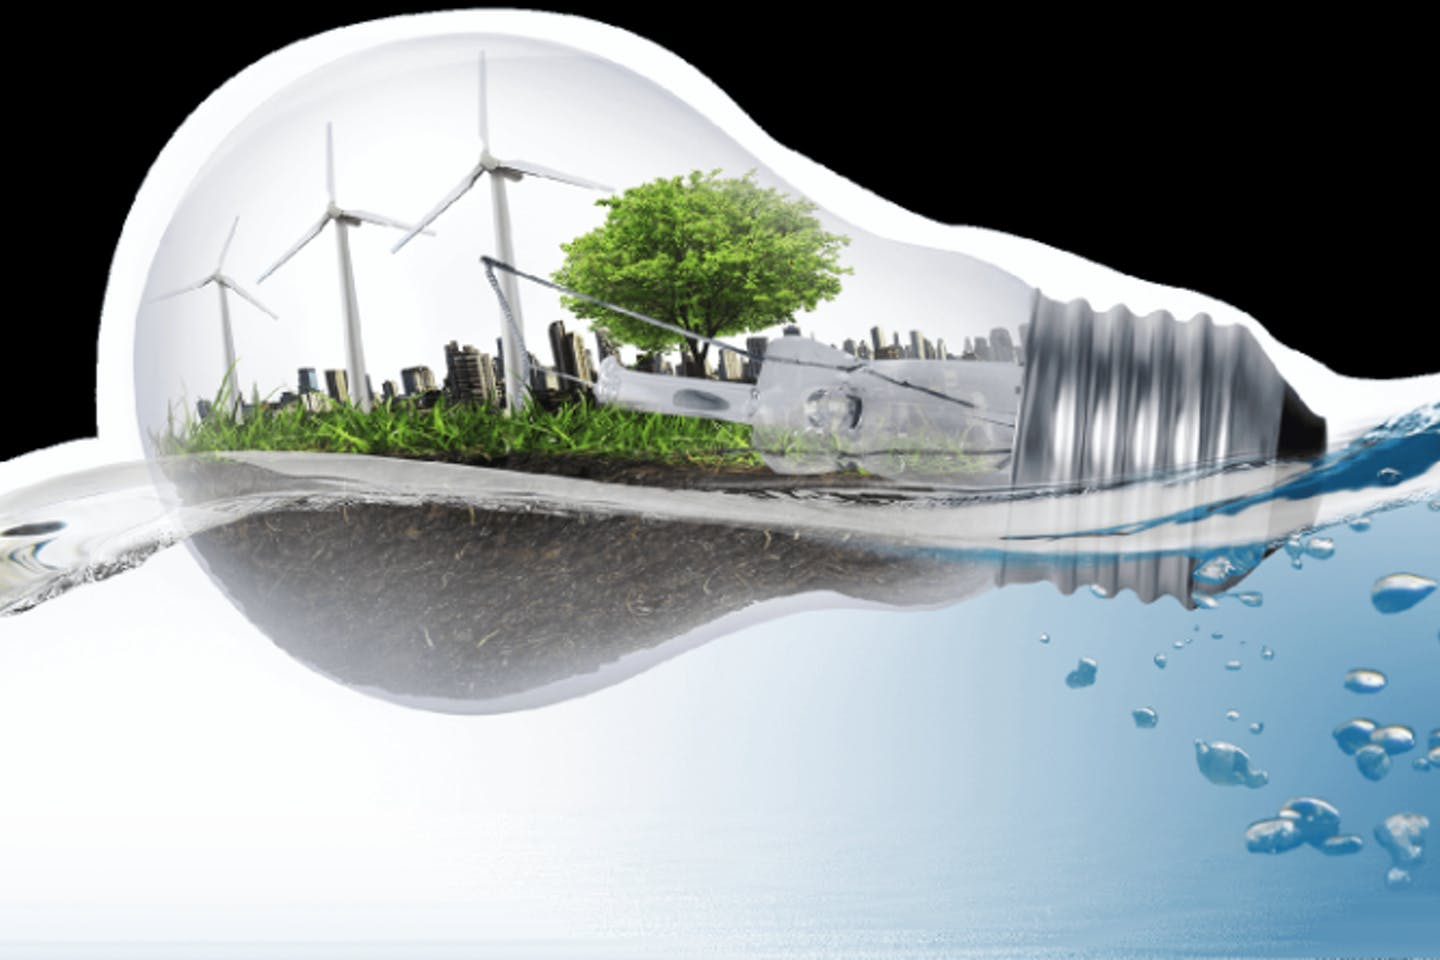 The Reneum Institute issues first batch of renewable energy tokens